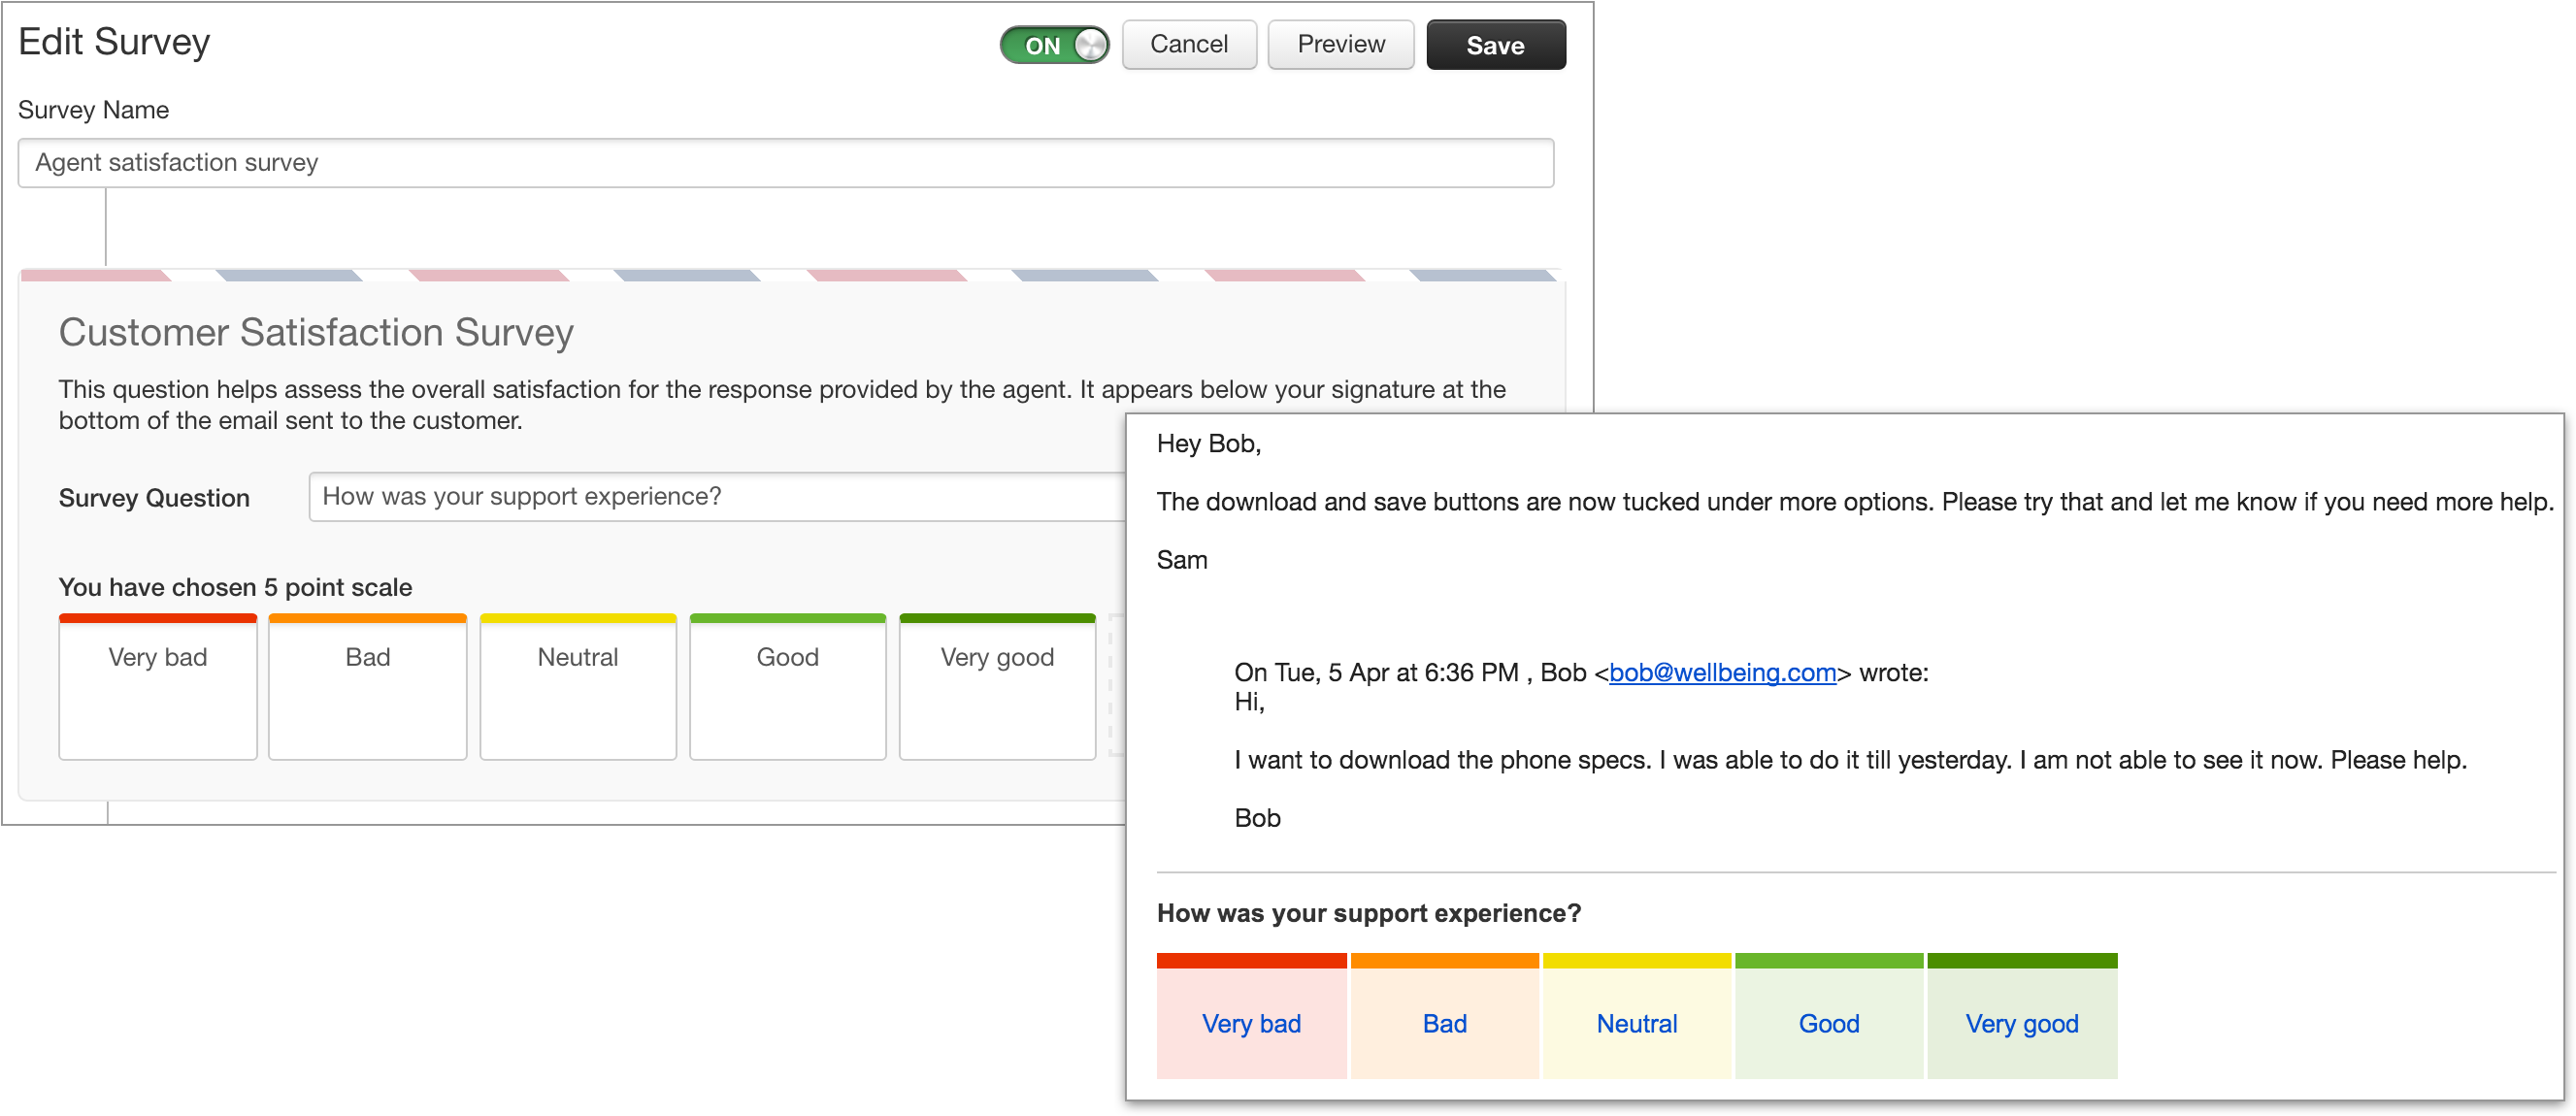 Once A Customer Takes The Survey, The Point Scale Will Be Locked Down And  The Survey Settings Cannot Be Edited. You Can, However, Rephrase The  Questions And ...